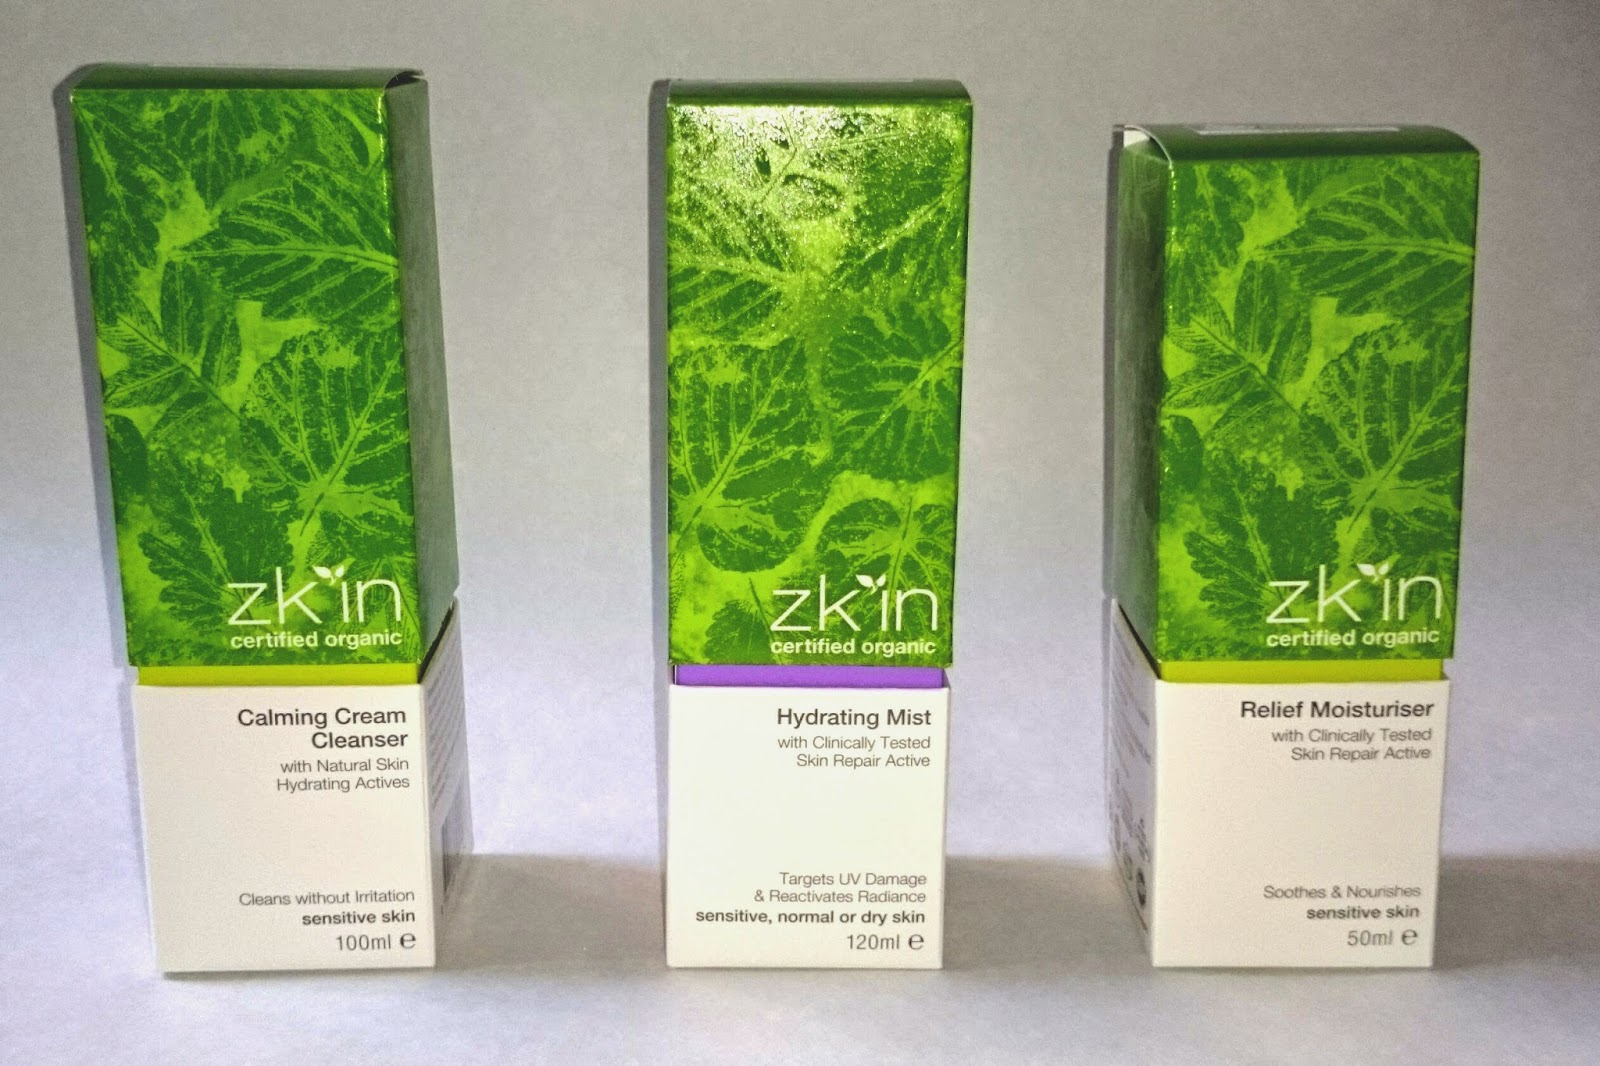 Zk'in Calming Cream Cleanser, Hydrating Mist, and Relief Moisturiser Boxes